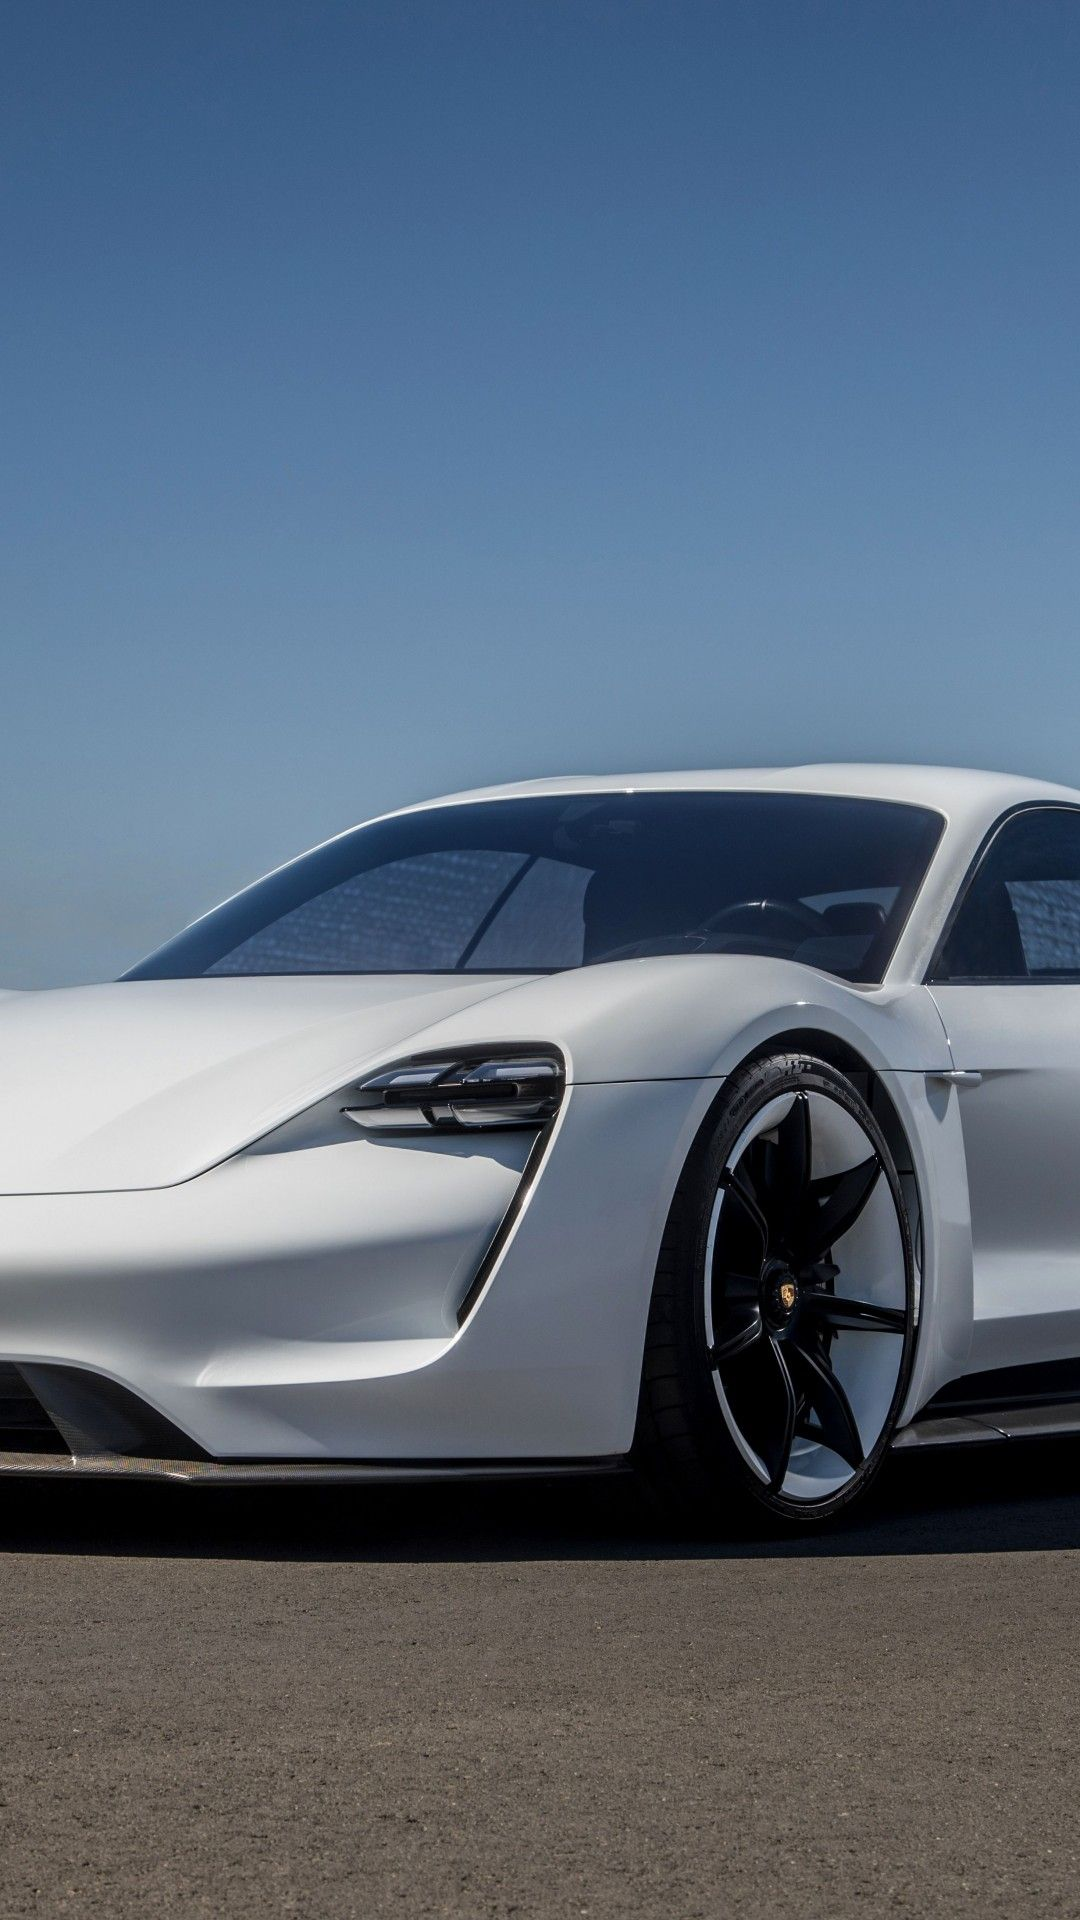 Supercar Wallpaper Android Download In 2020 Super Cars Android Wallpaper Wallpaper